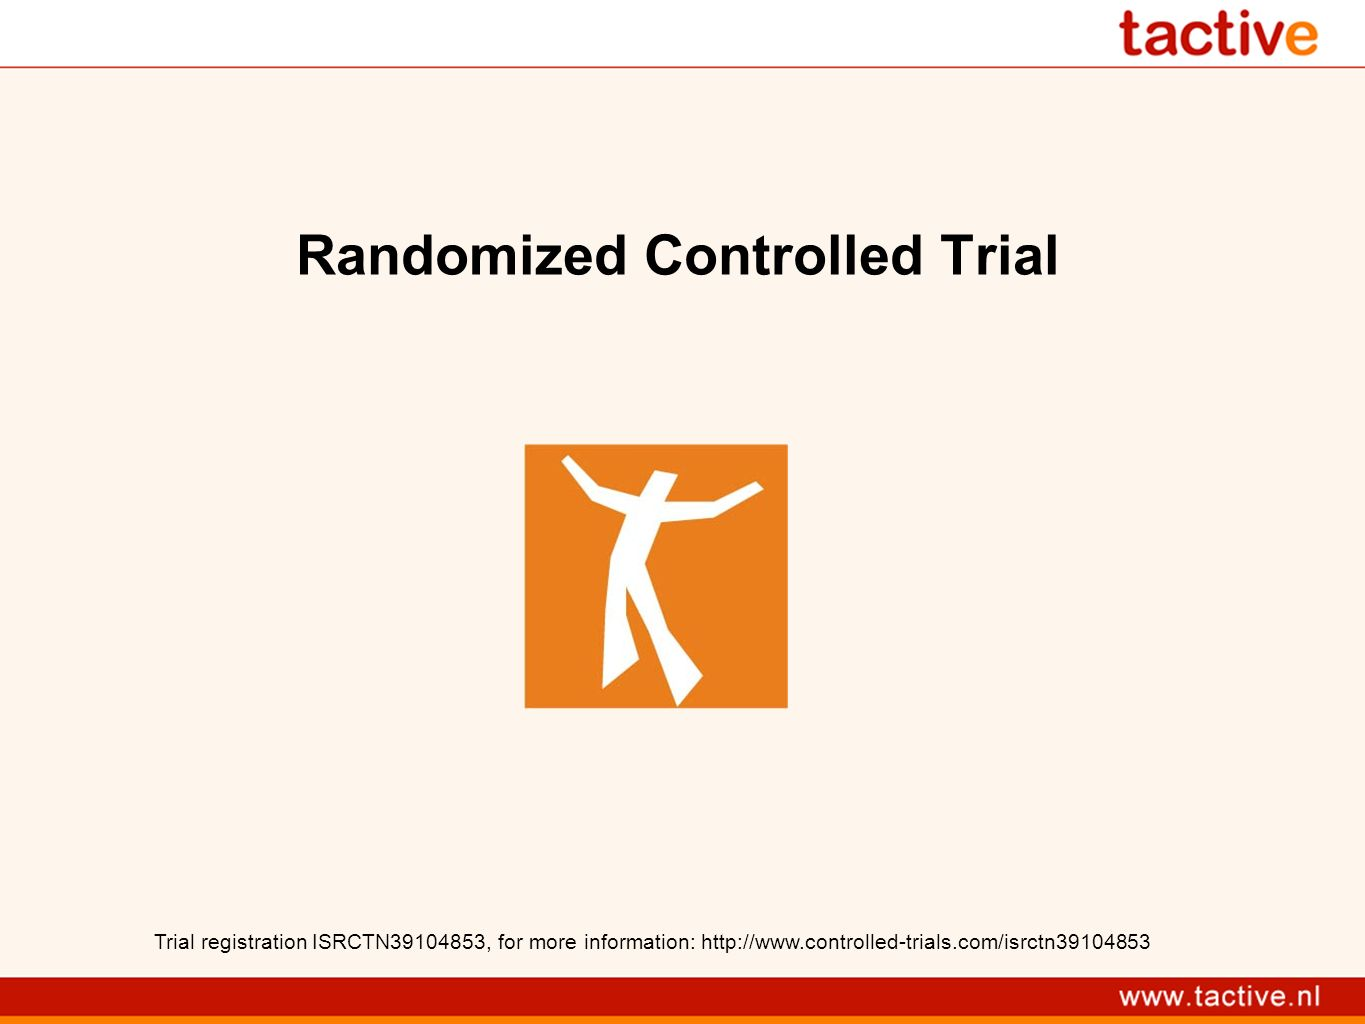 Randomized Controlled Trial Trial registration ISRCTN39104853, for more information: http://www.controlled-trials.com/isrctn39104853